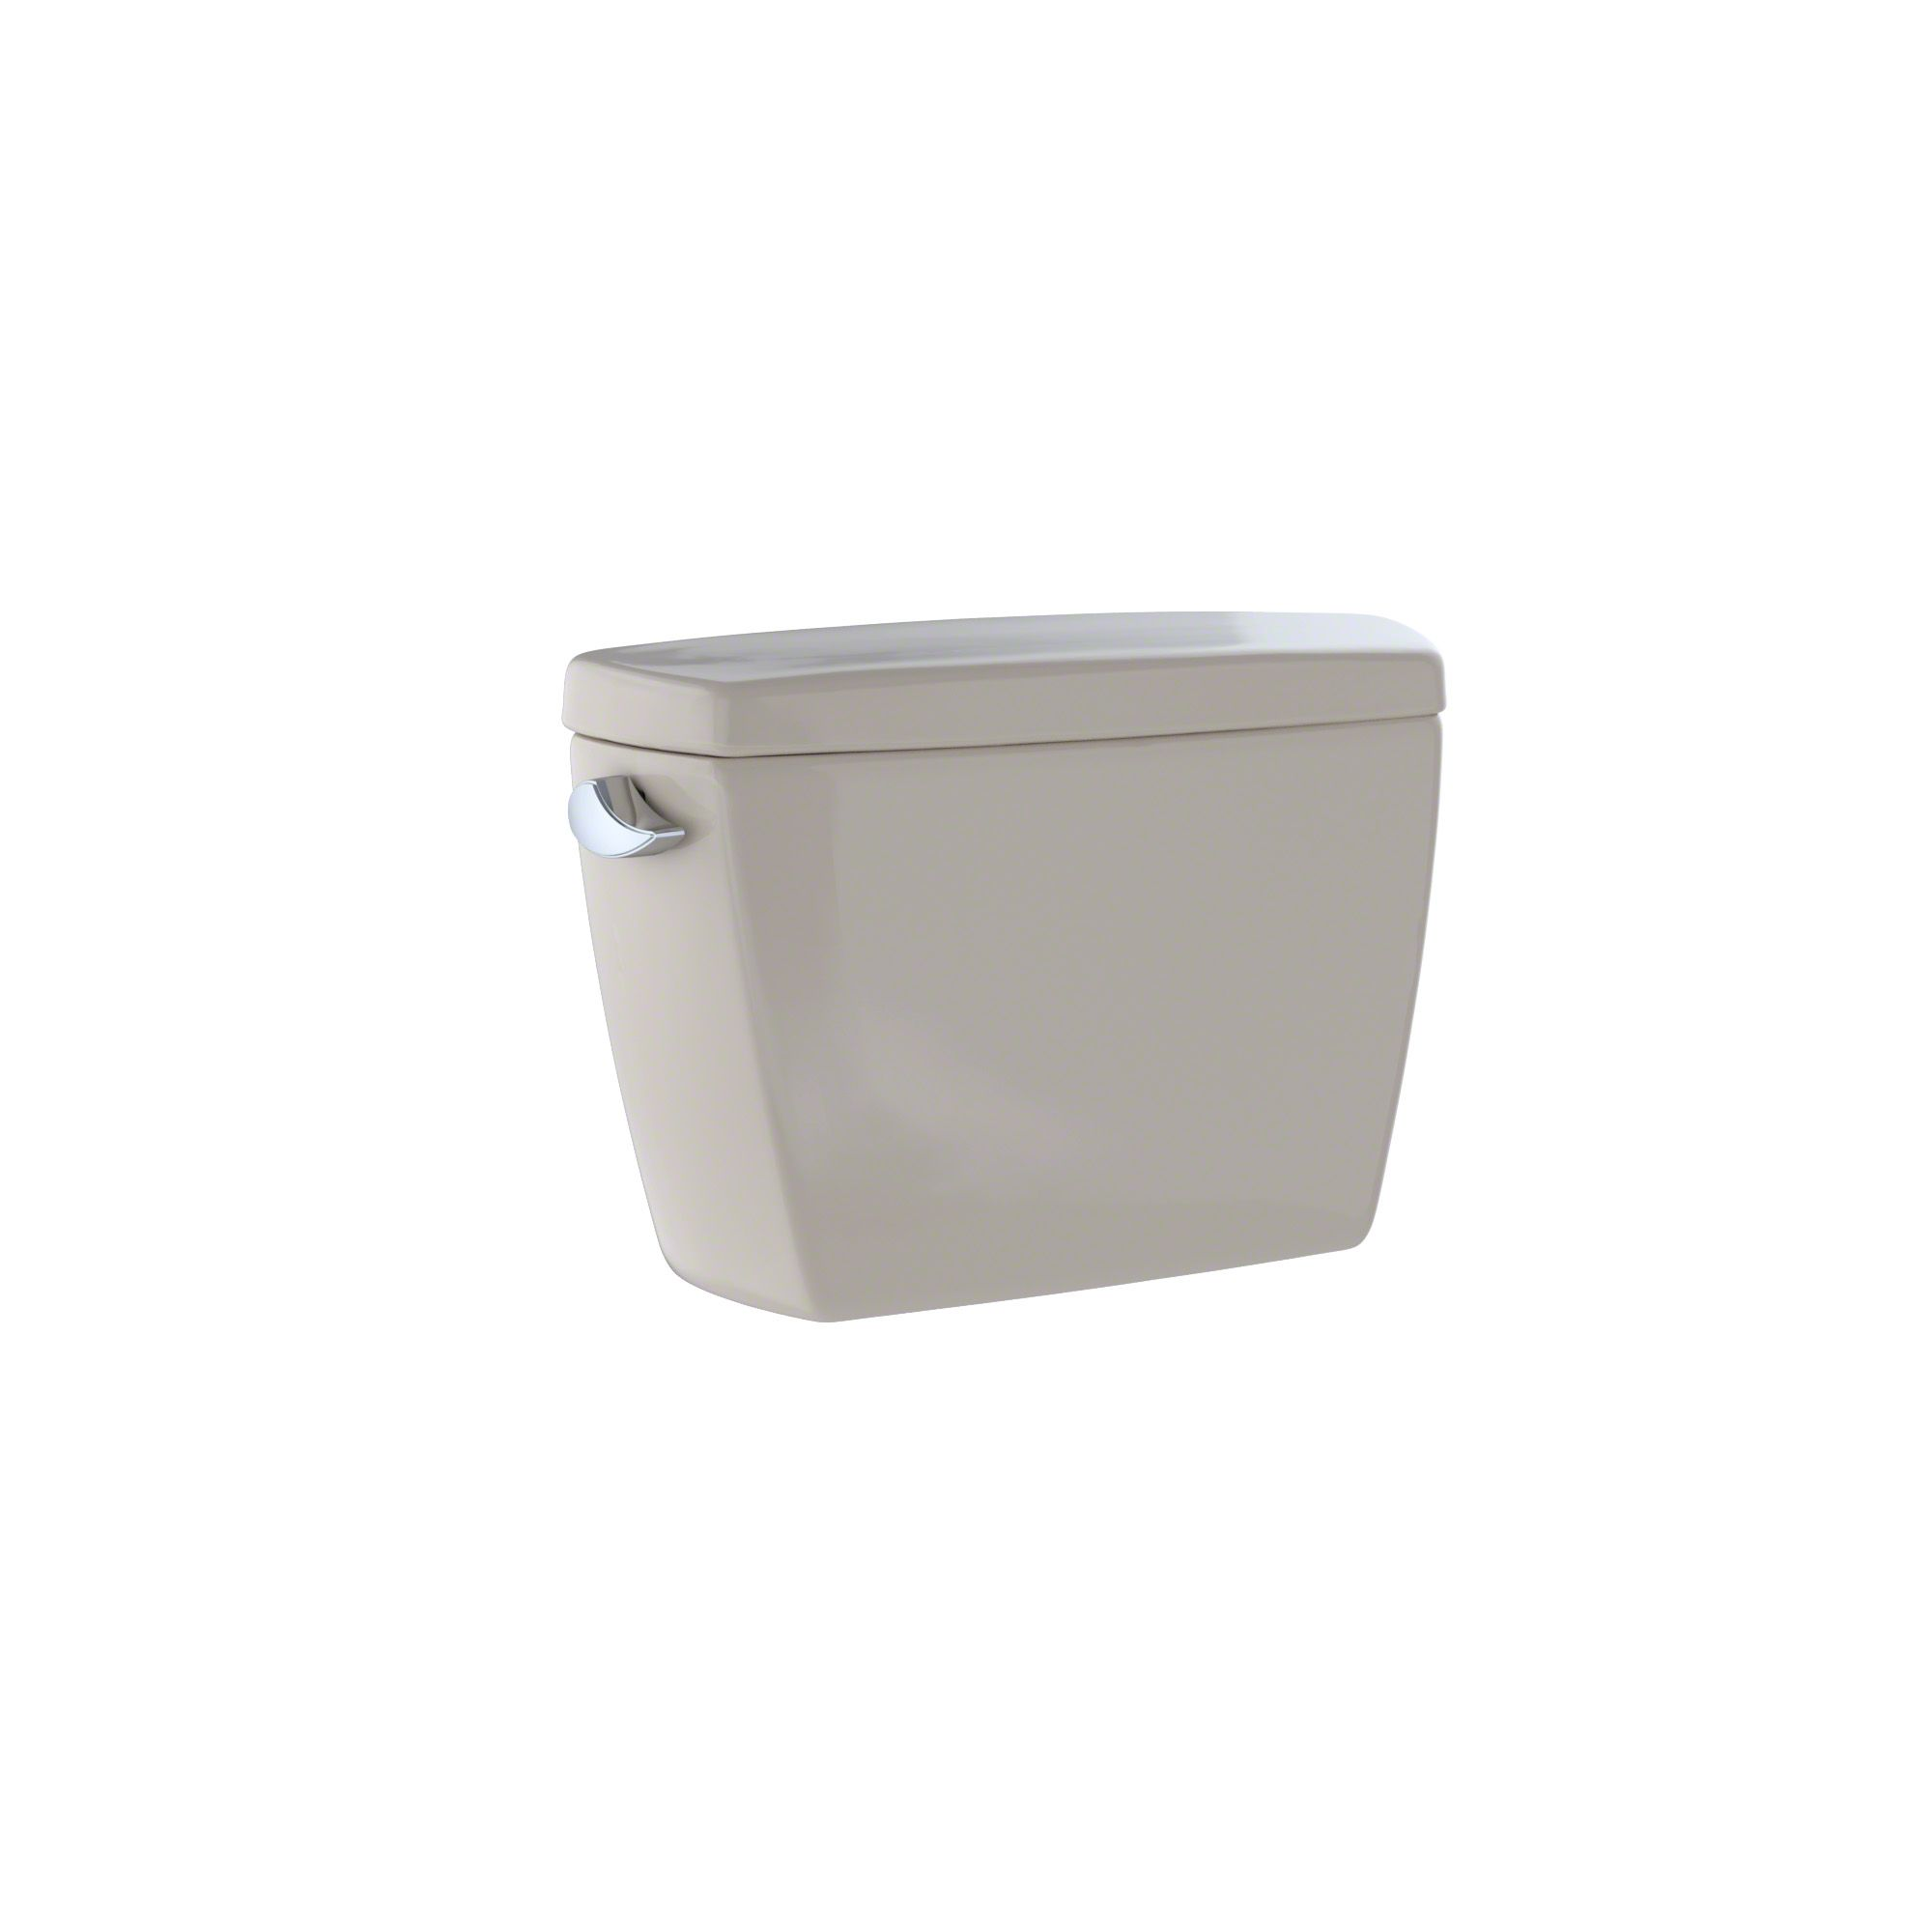 Toto Drake G Max 1 6 Gpf Insulated Toilet Tank Bone St743sd 03 Products In 2019 Toilet Flush Toilet Bathroom Accessories